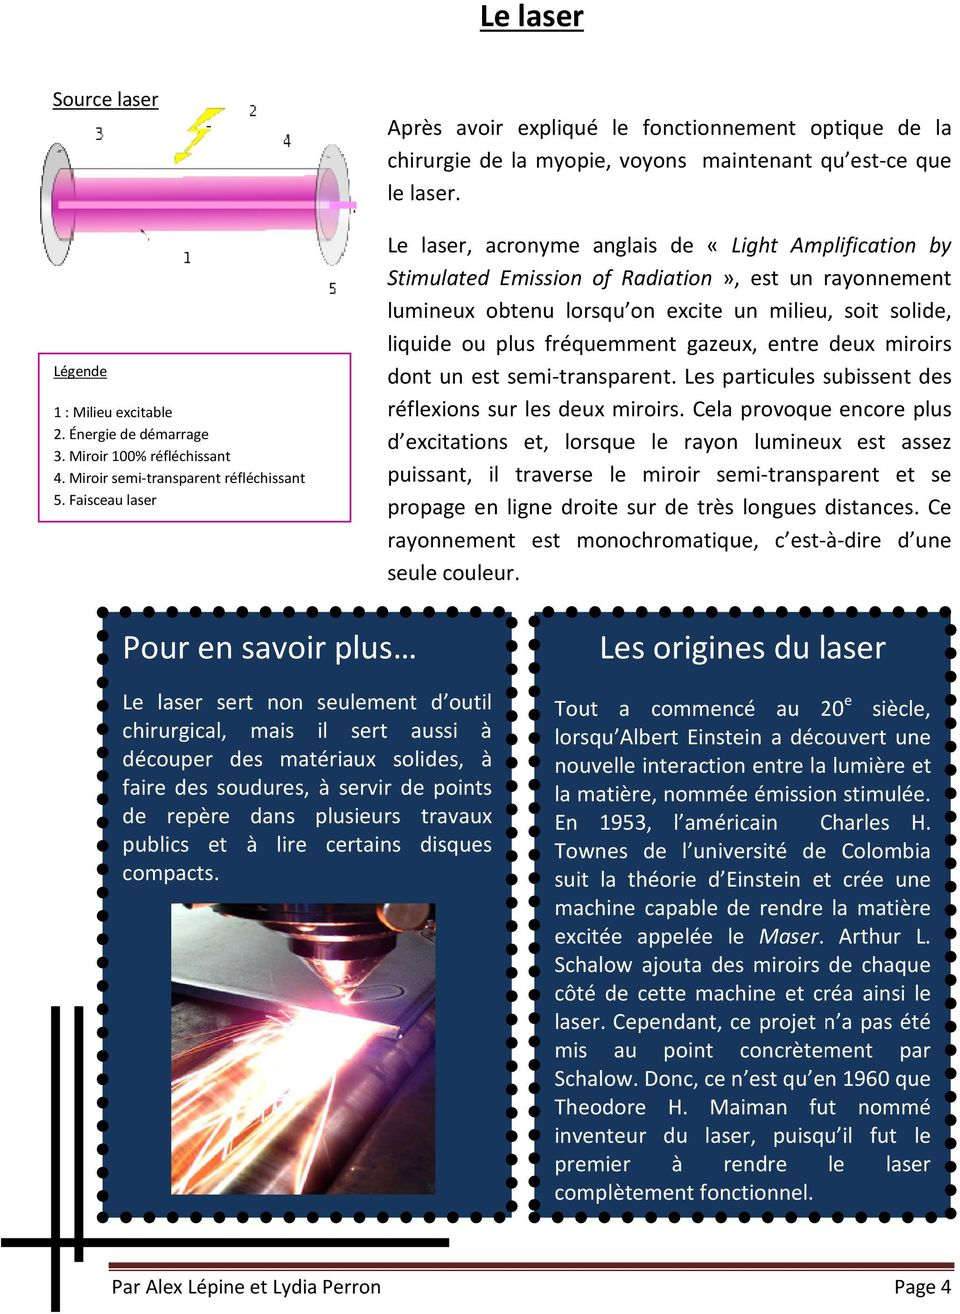 Le laser, acronyme anglais de «Light Amplification by Stimulated Emission of Radiation», est un rayonnement lumineux obtenu lorsqu on excite un milieu, soit solide, liquide ou plus fréquemment